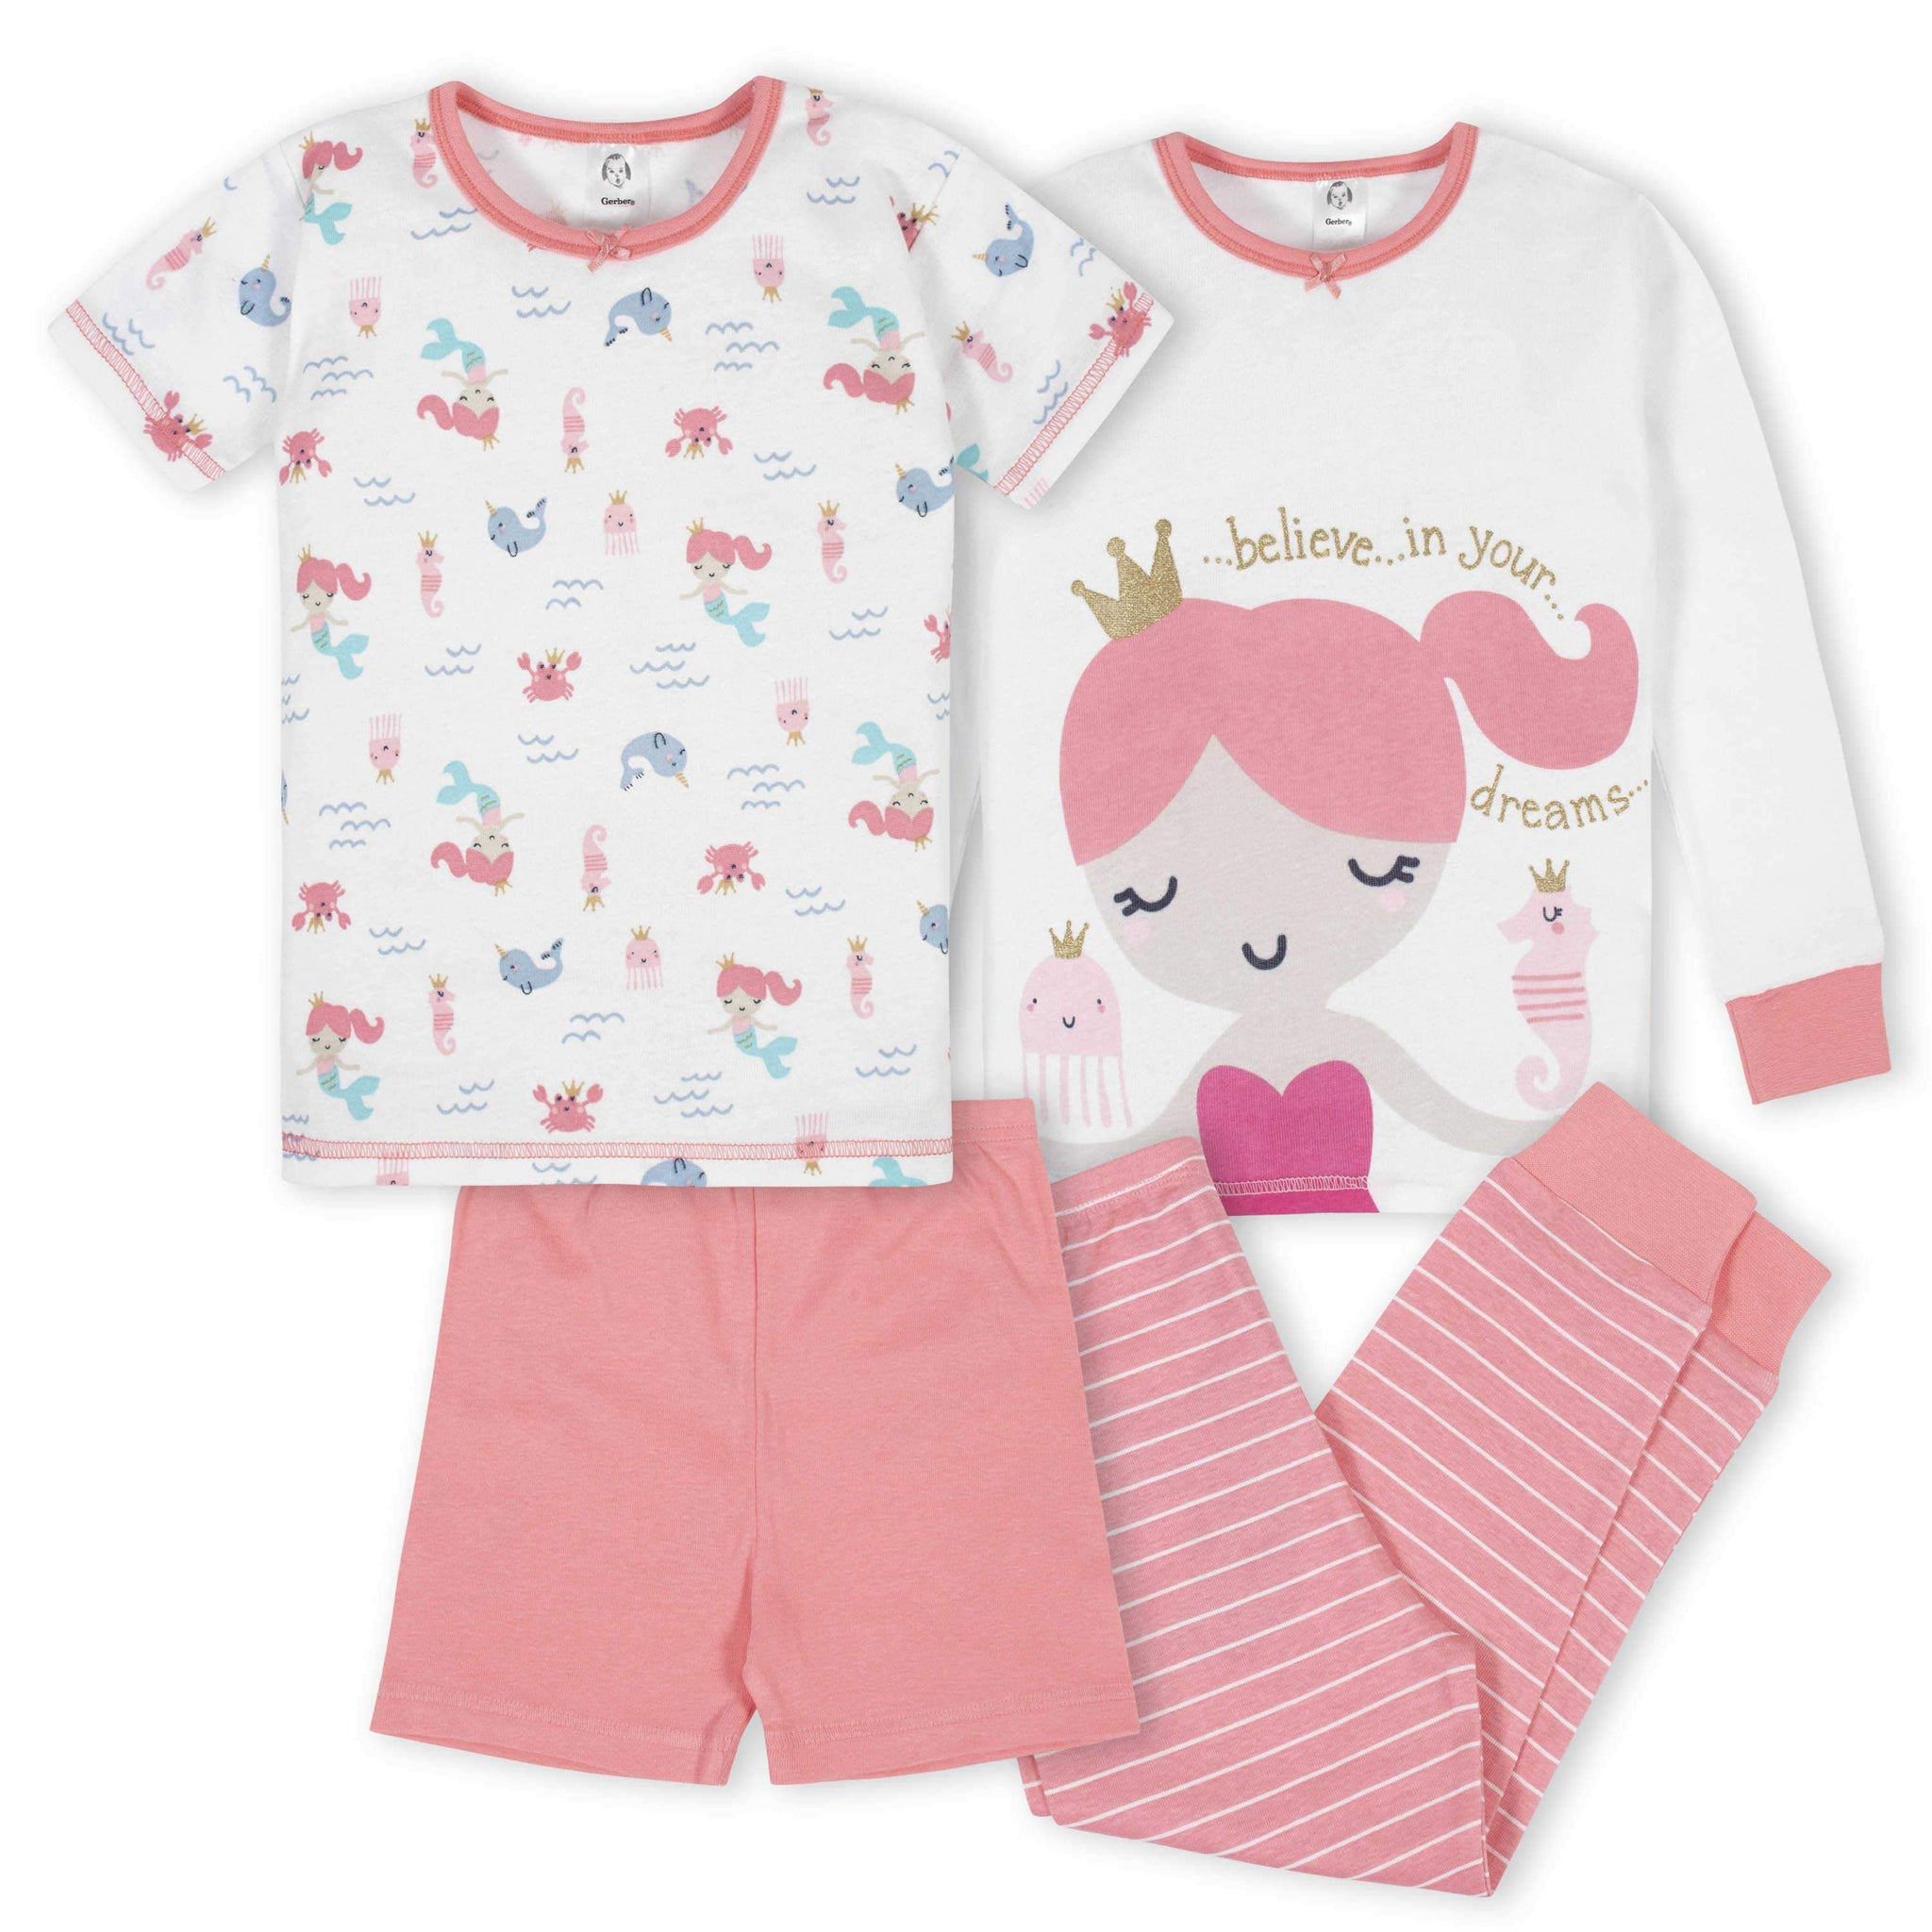 4-Piece Girls Mermaid Pajama Set